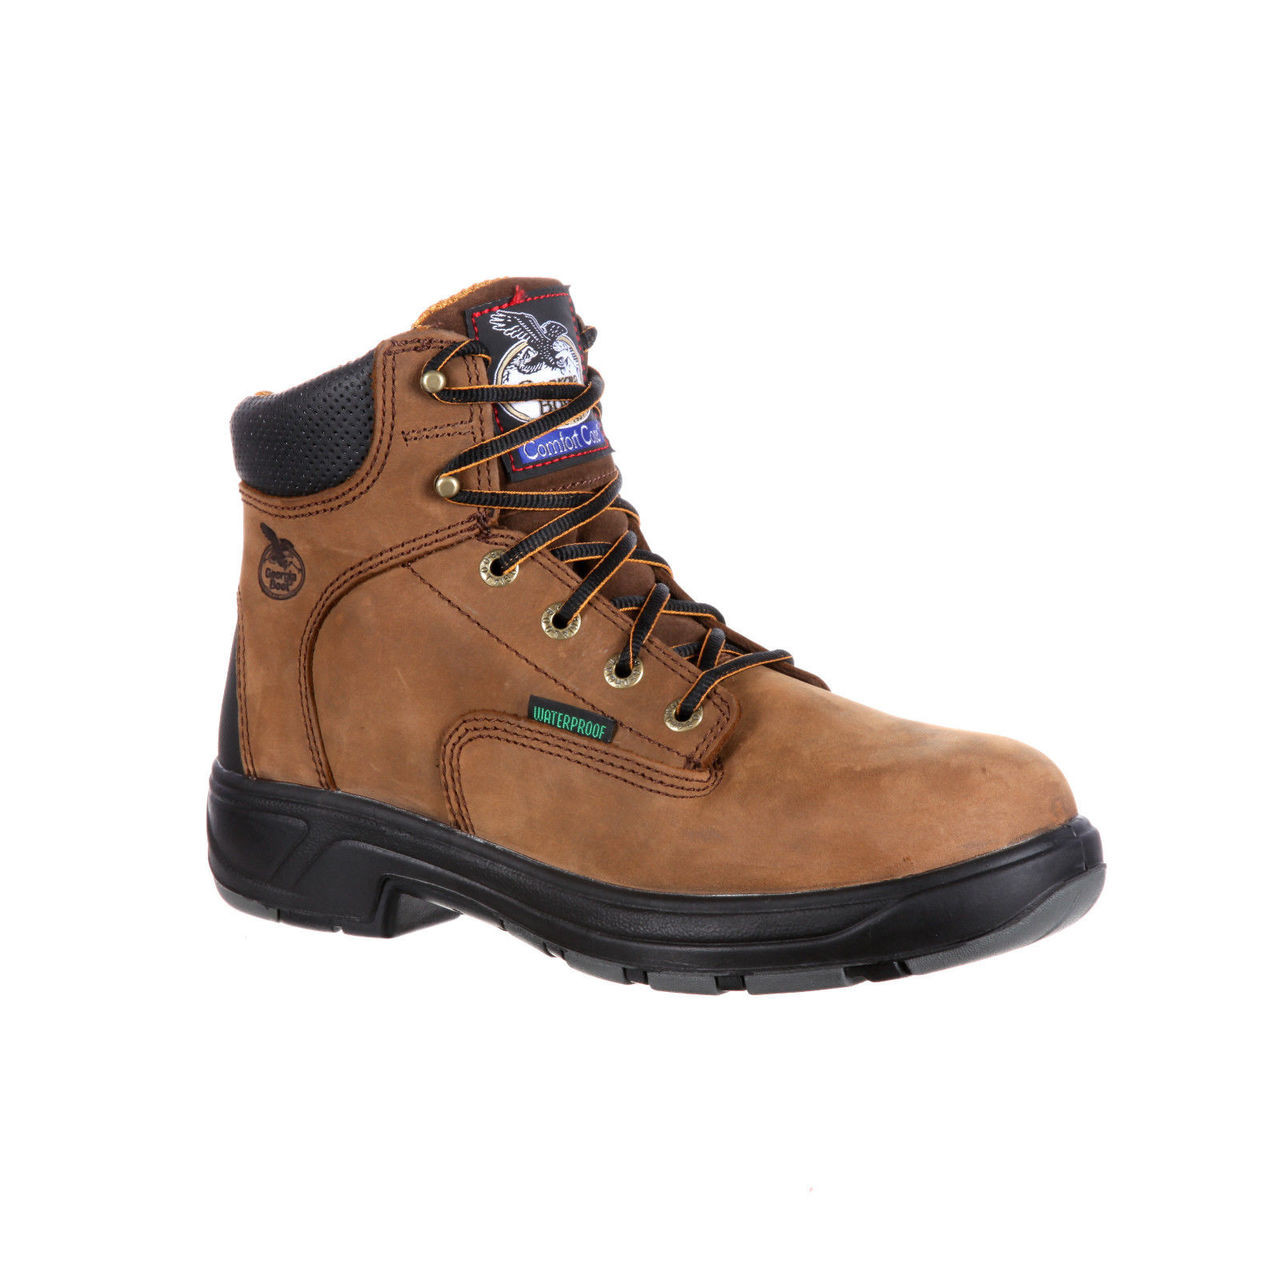 Georgia Boot FLXpoint Composite Toe Waterproof Work Boots G6644